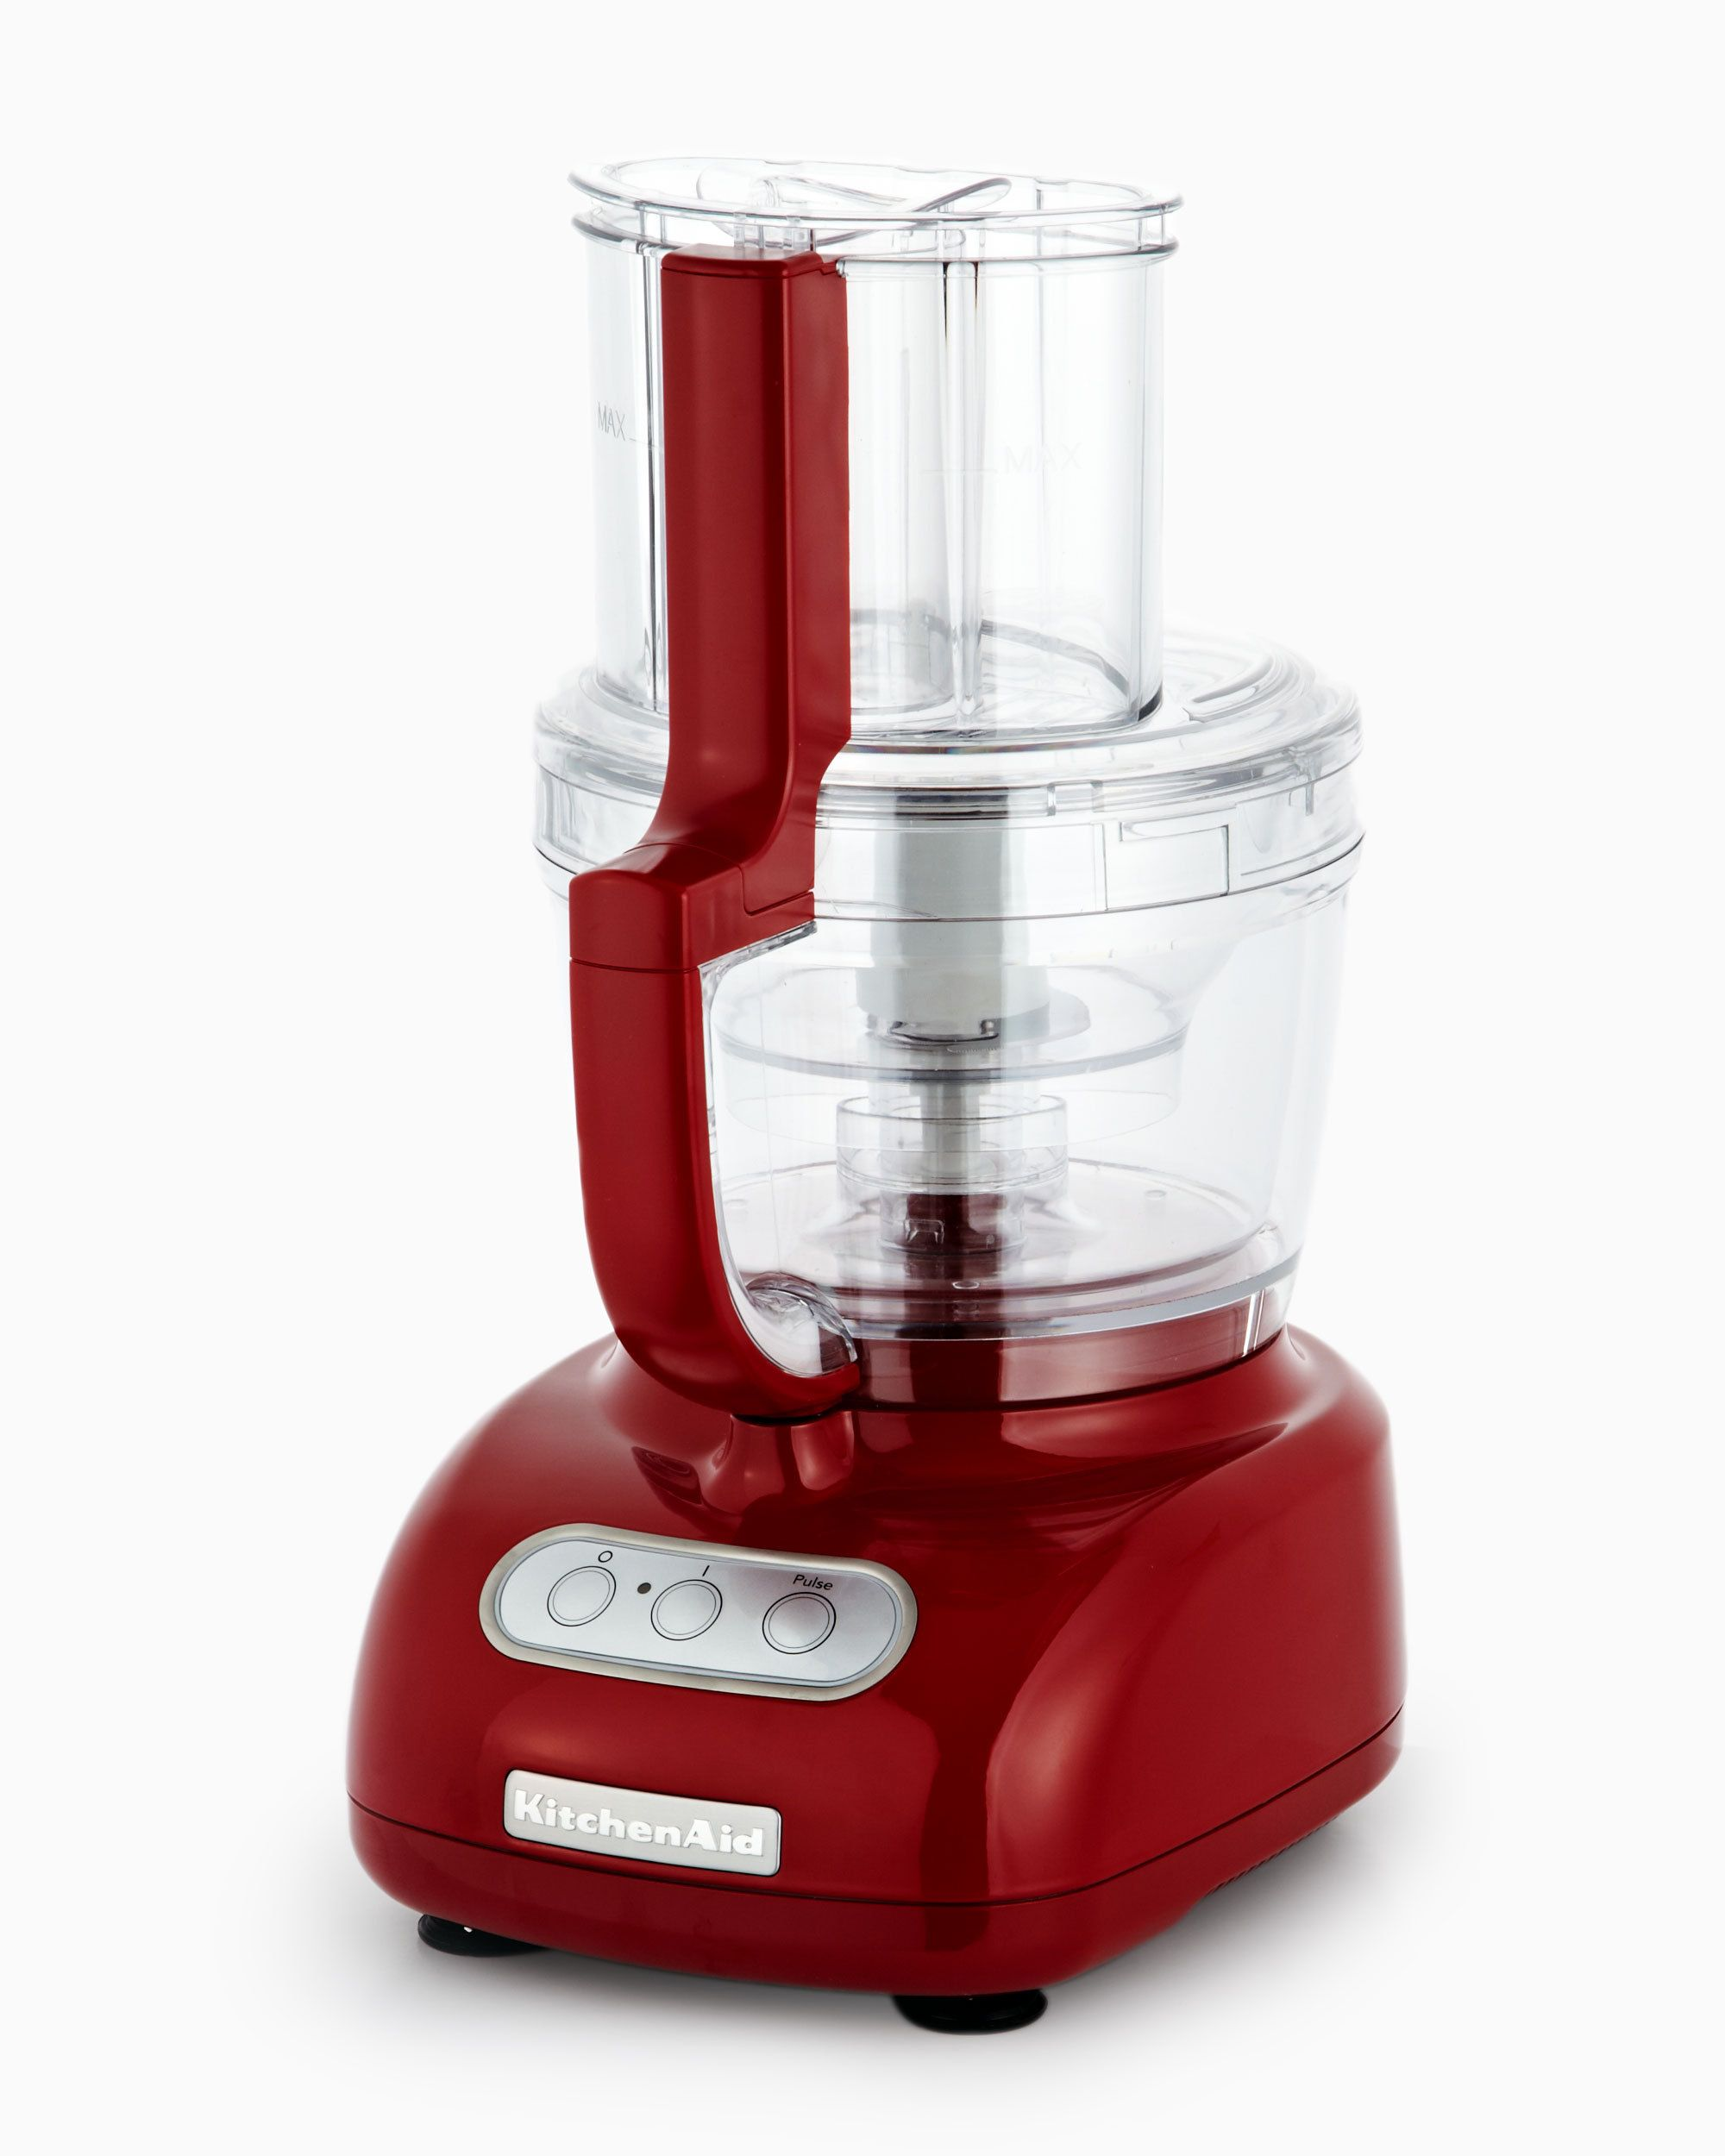 Kitchenaid artisan food processor empire red with images